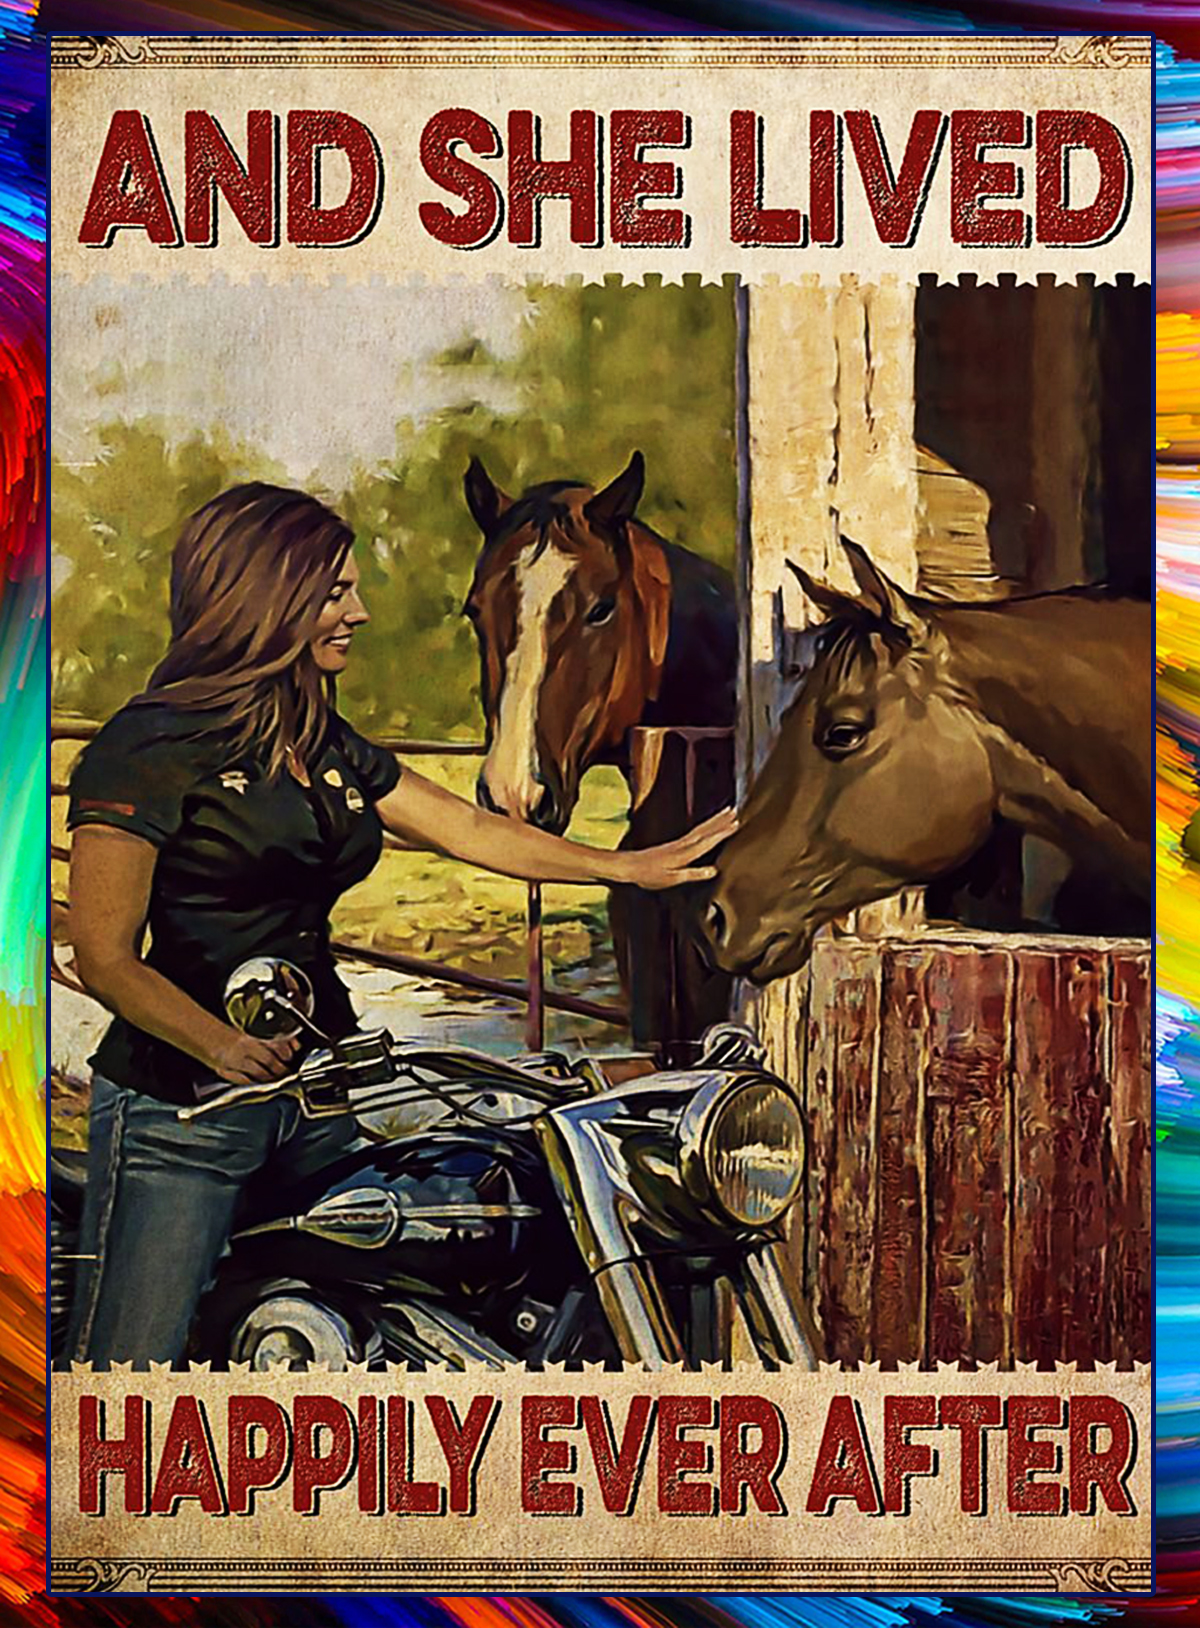 Biker horse and she lived happily ever after poster